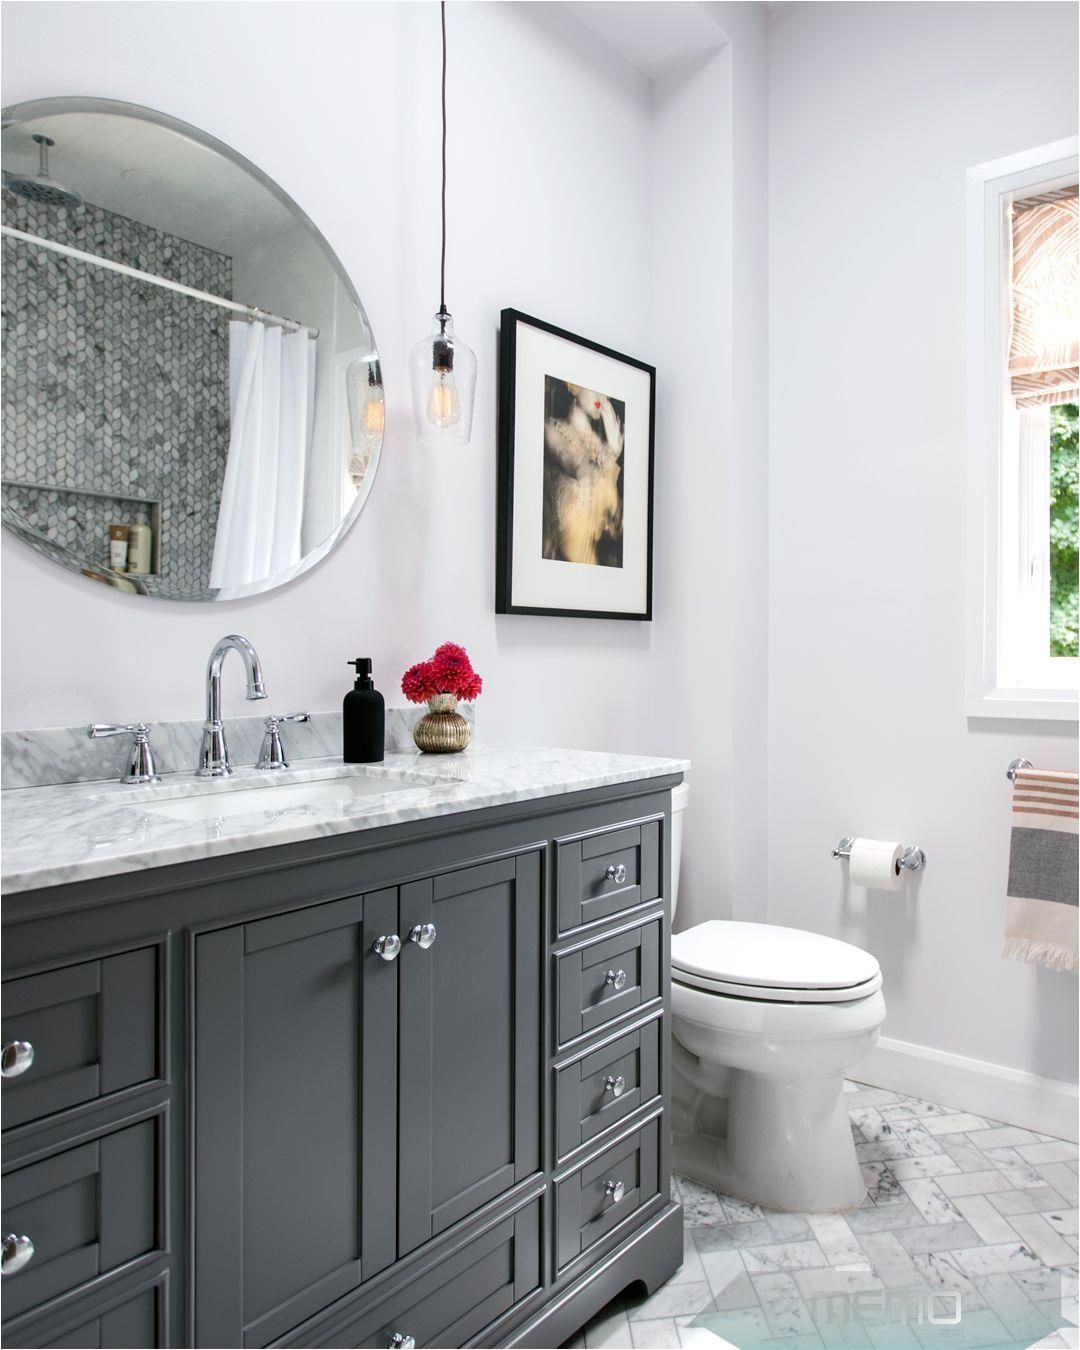 Nov 4 2018 House Home Partnered With The Home Depot To Give A Small Bathroom A Reno With A New In 2020 Kleines Bad Dekorieren Bad Fliesen Designs Badezimmer Klein